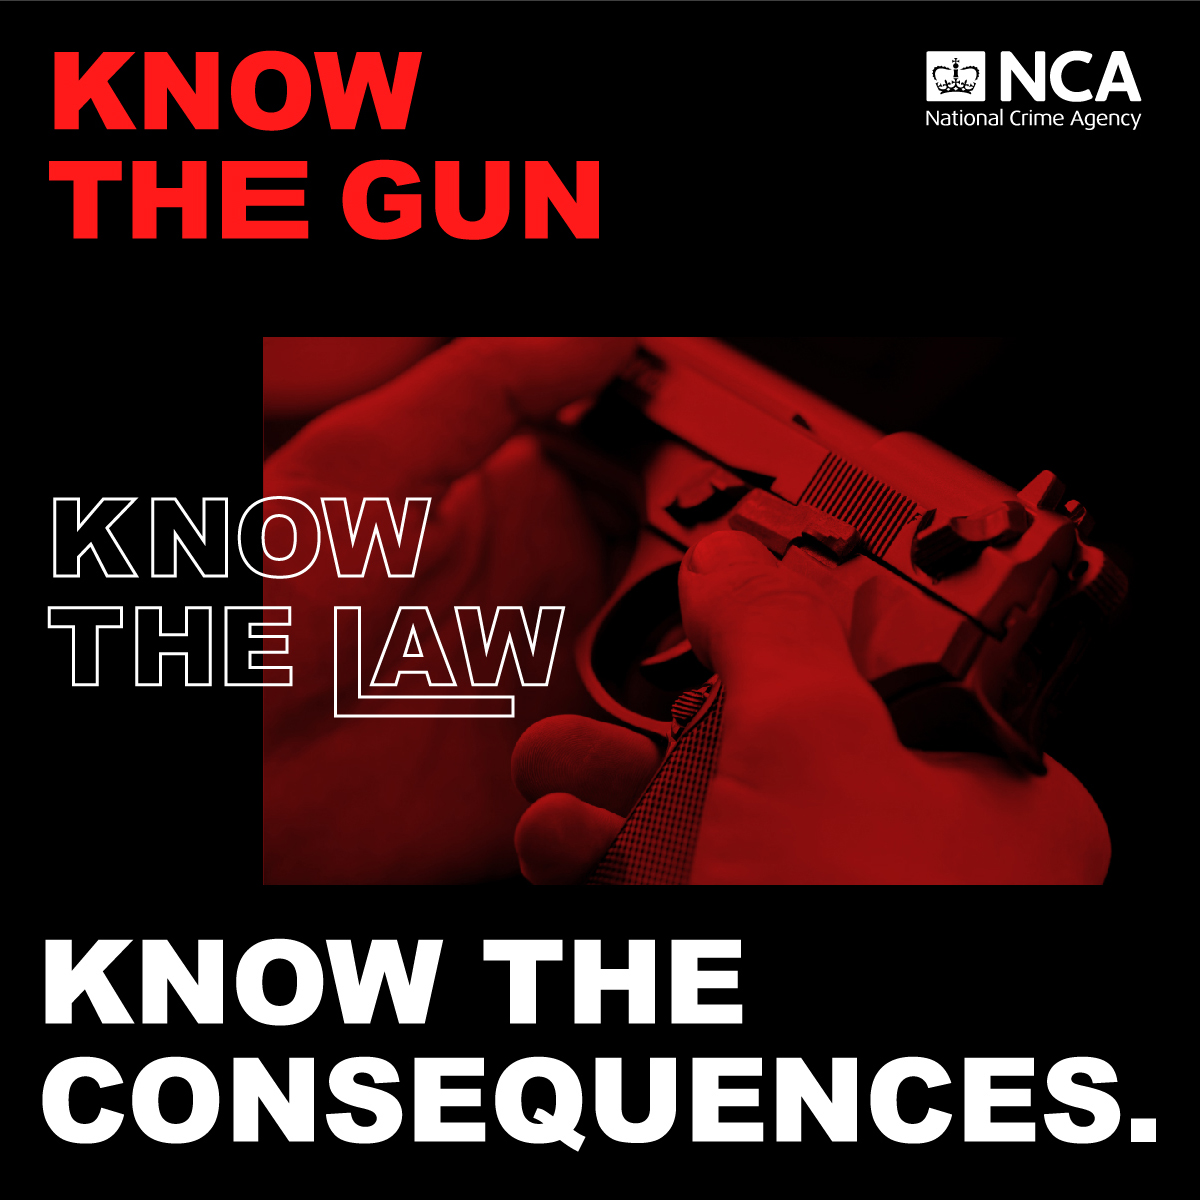 Graphic: 'Know the gun, know the law, know the consequences'